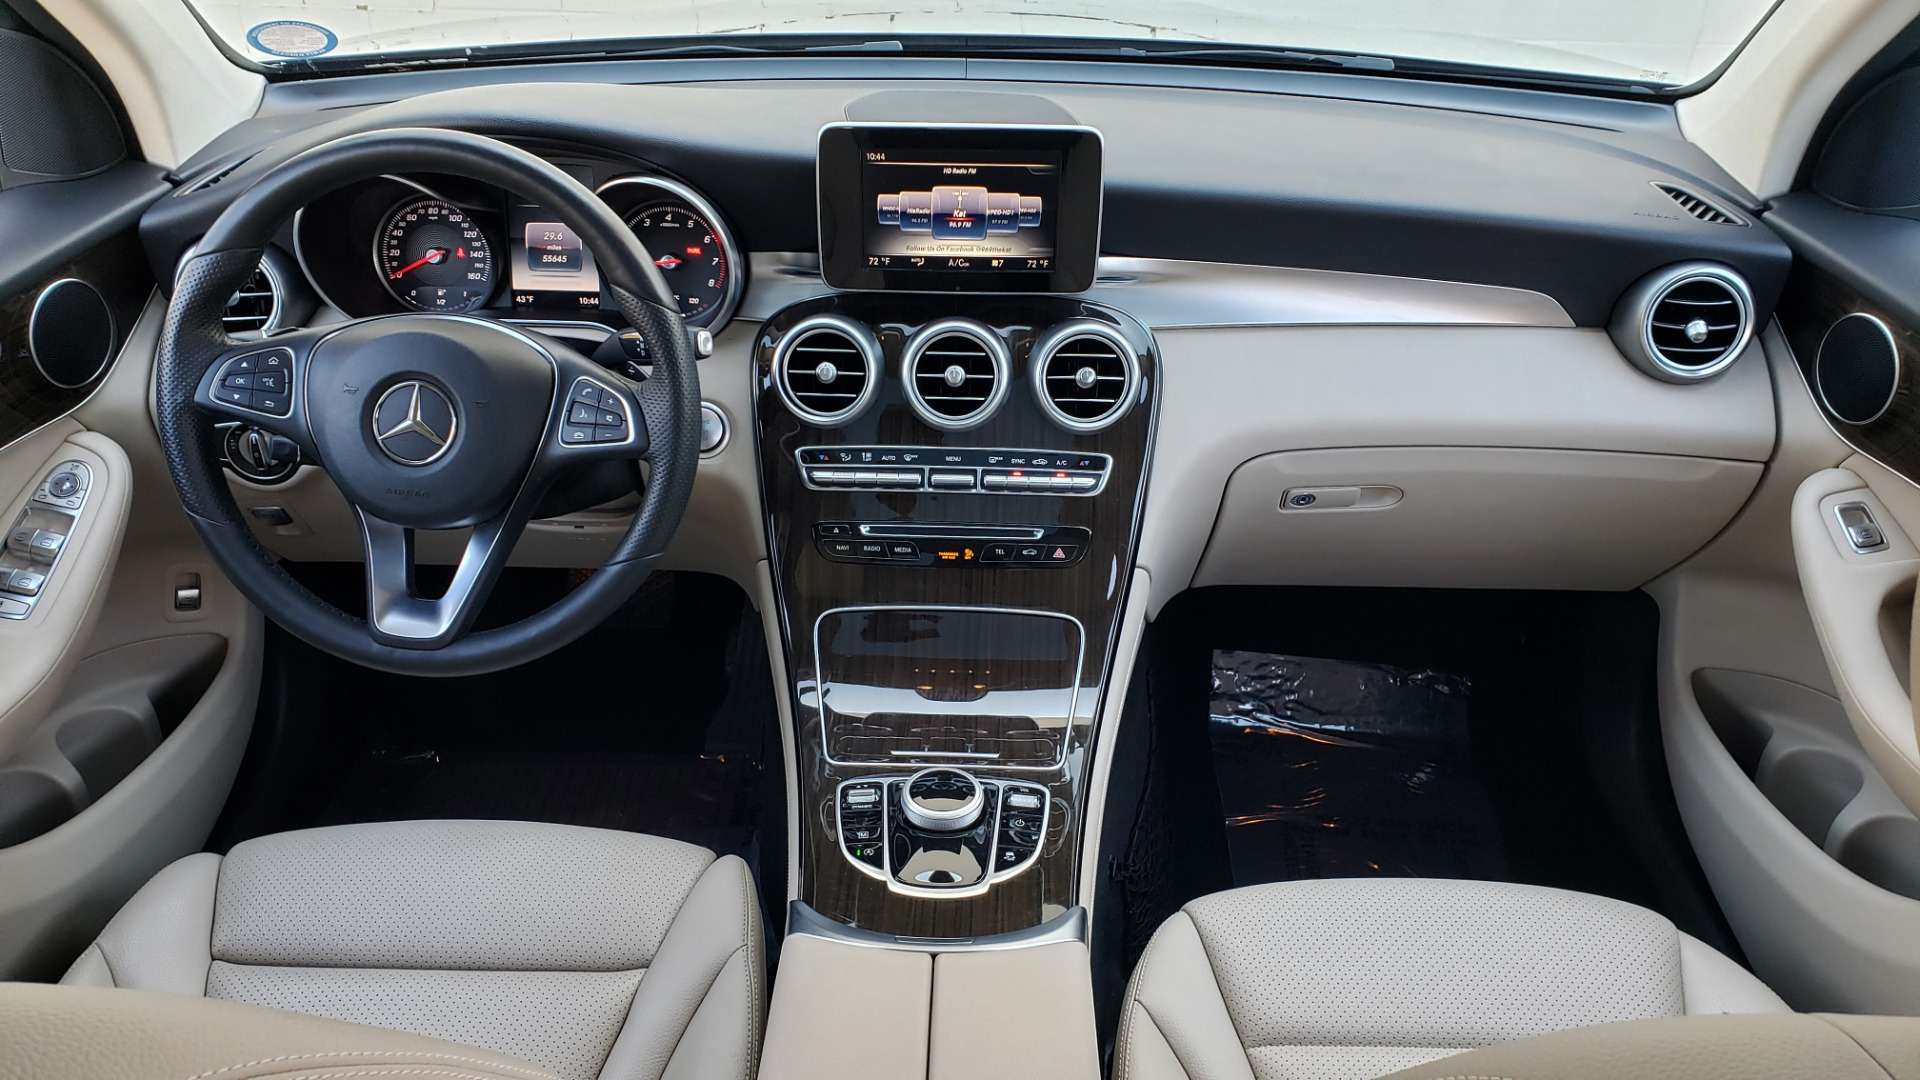 Used 2017 Mercedes-Benz GLC 300 4MATIC / PREM / NAV / KEYLESS-GO / SUNROOF / REARVIEW for sale Sold at Formula Imports in Charlotte NC 28227 71